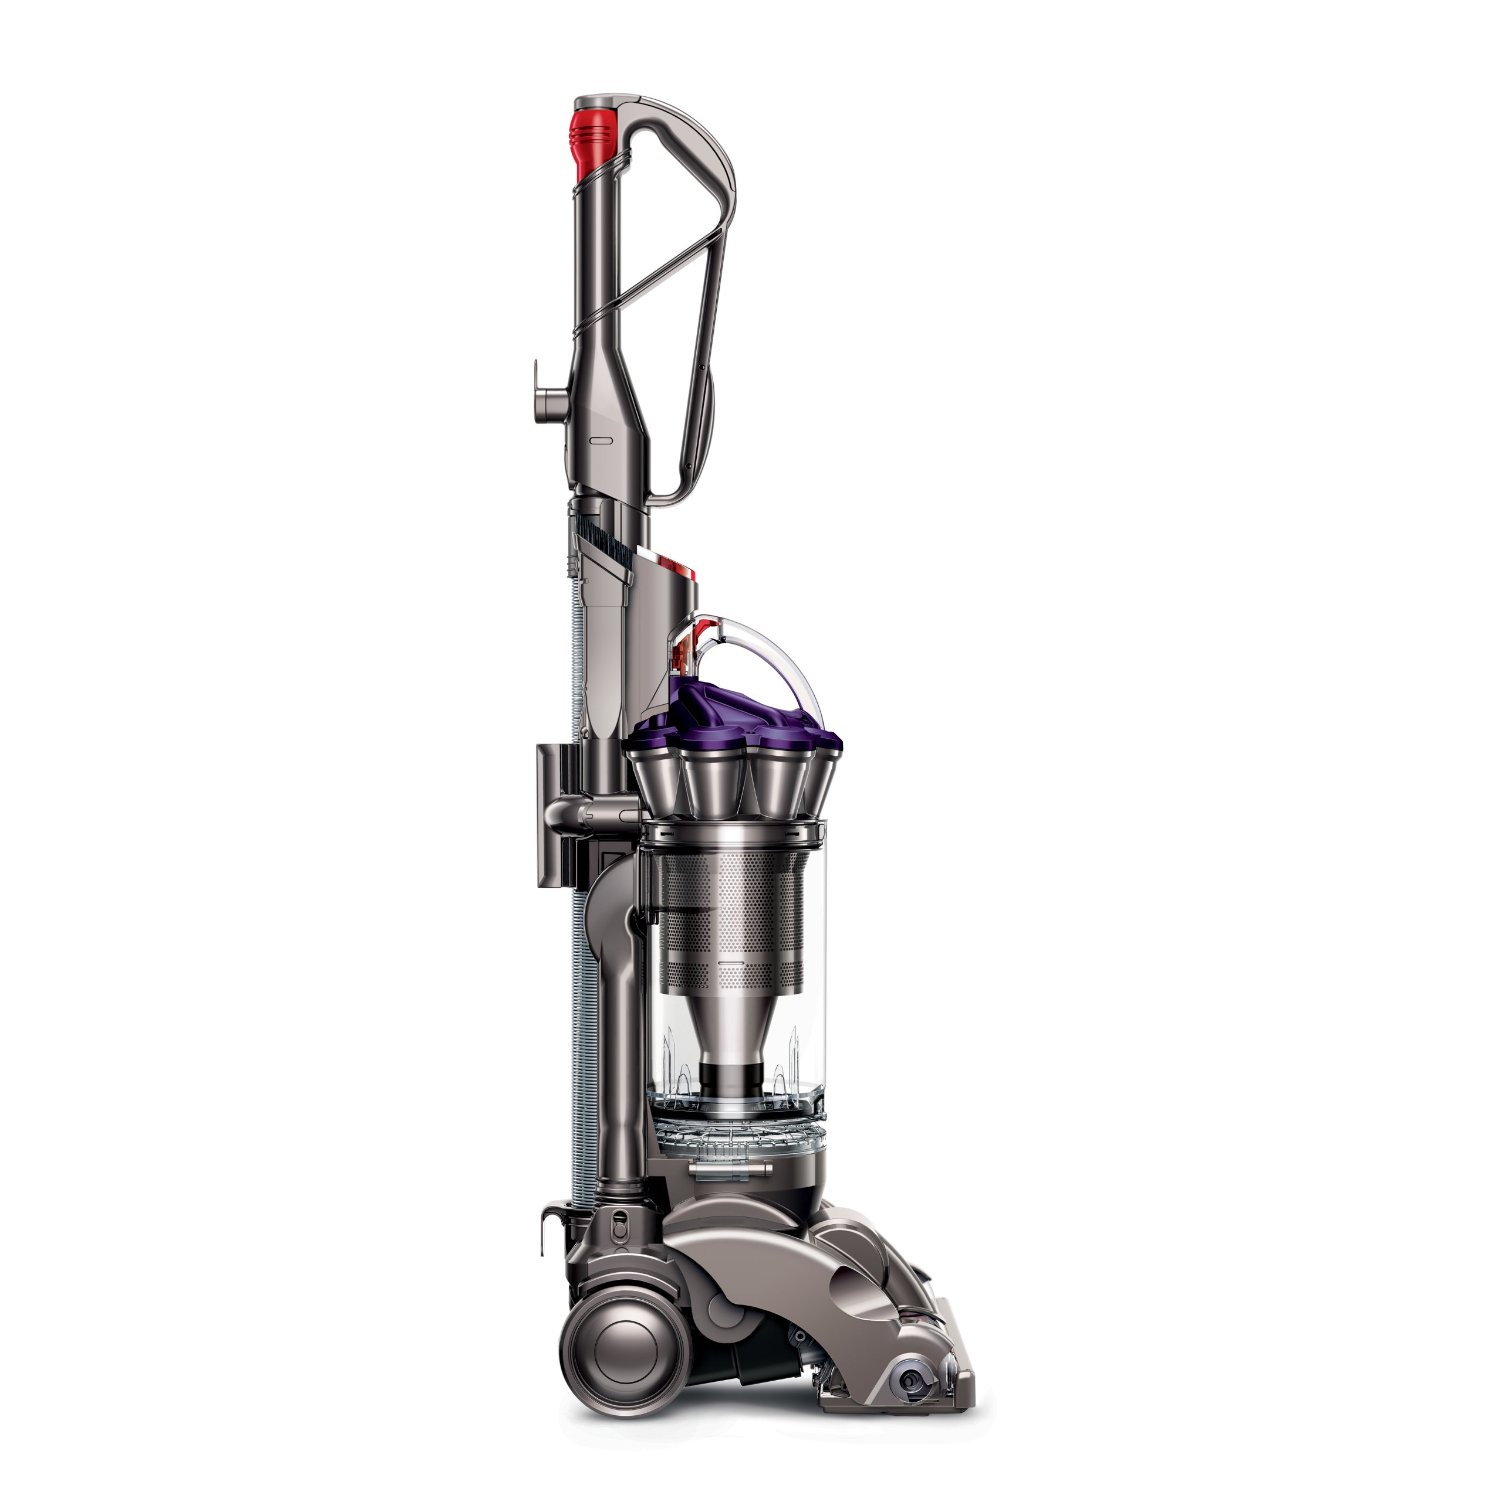 Factory Reconditioned Dyson DC28 Animal